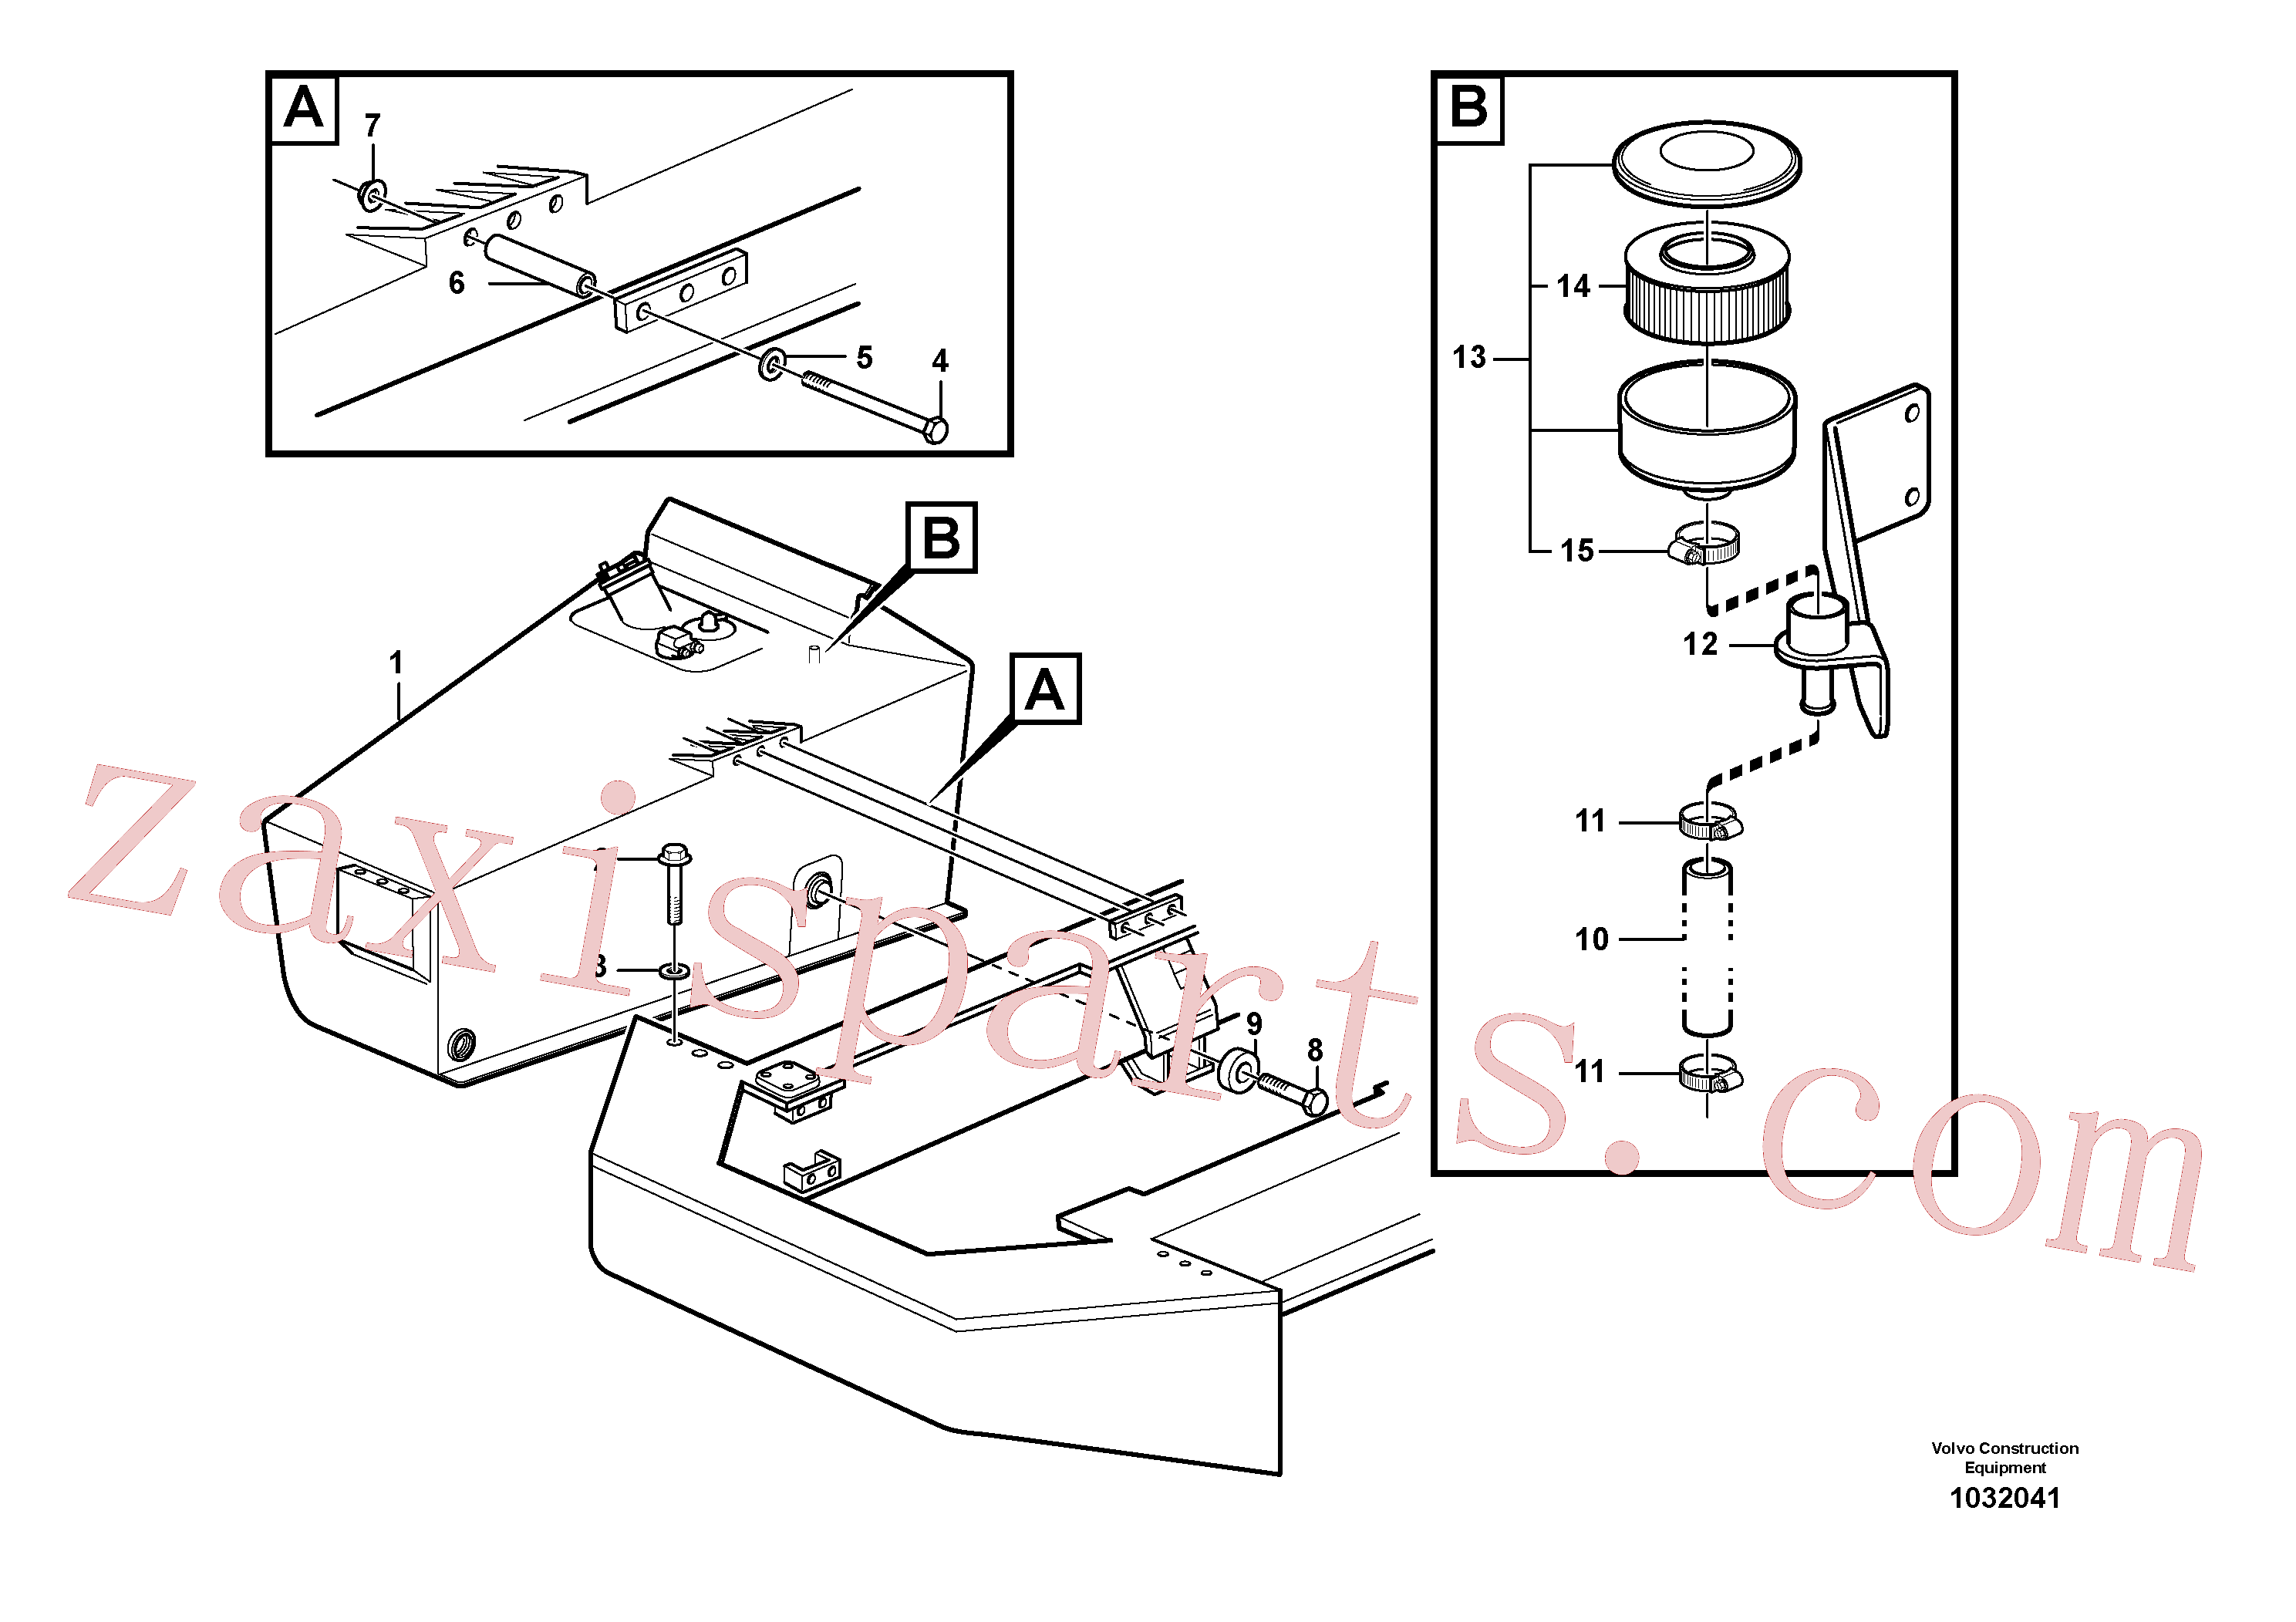 VOE14023336 for Volvo Fuel tank with fitting parts(1032041 assembly)